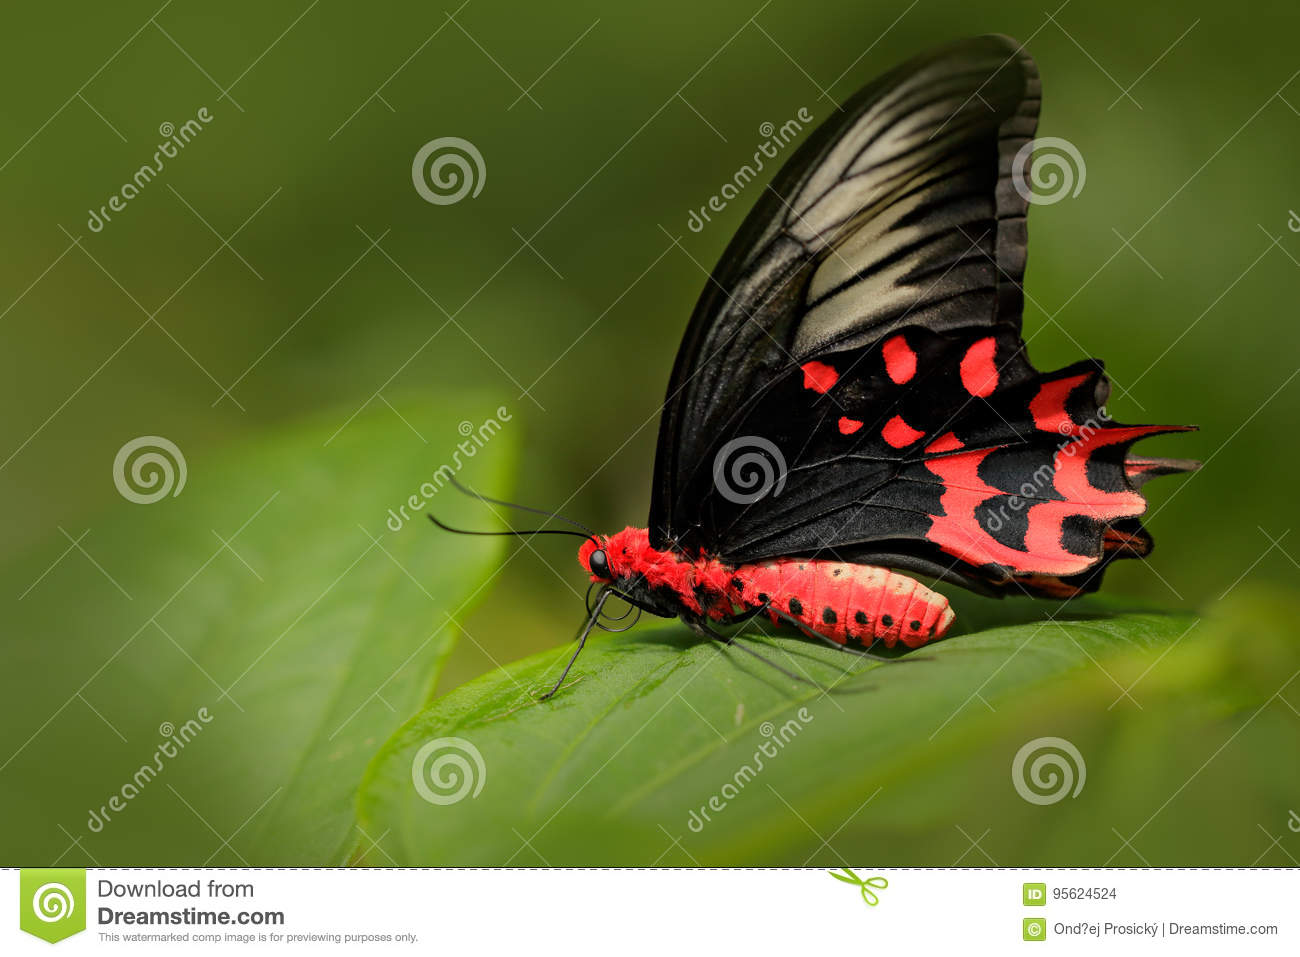 Antrophaneura semperi, in the nature green forest habitat, Malaysia, India. Insect in tropic jungle. Butterfly sitting on the gree